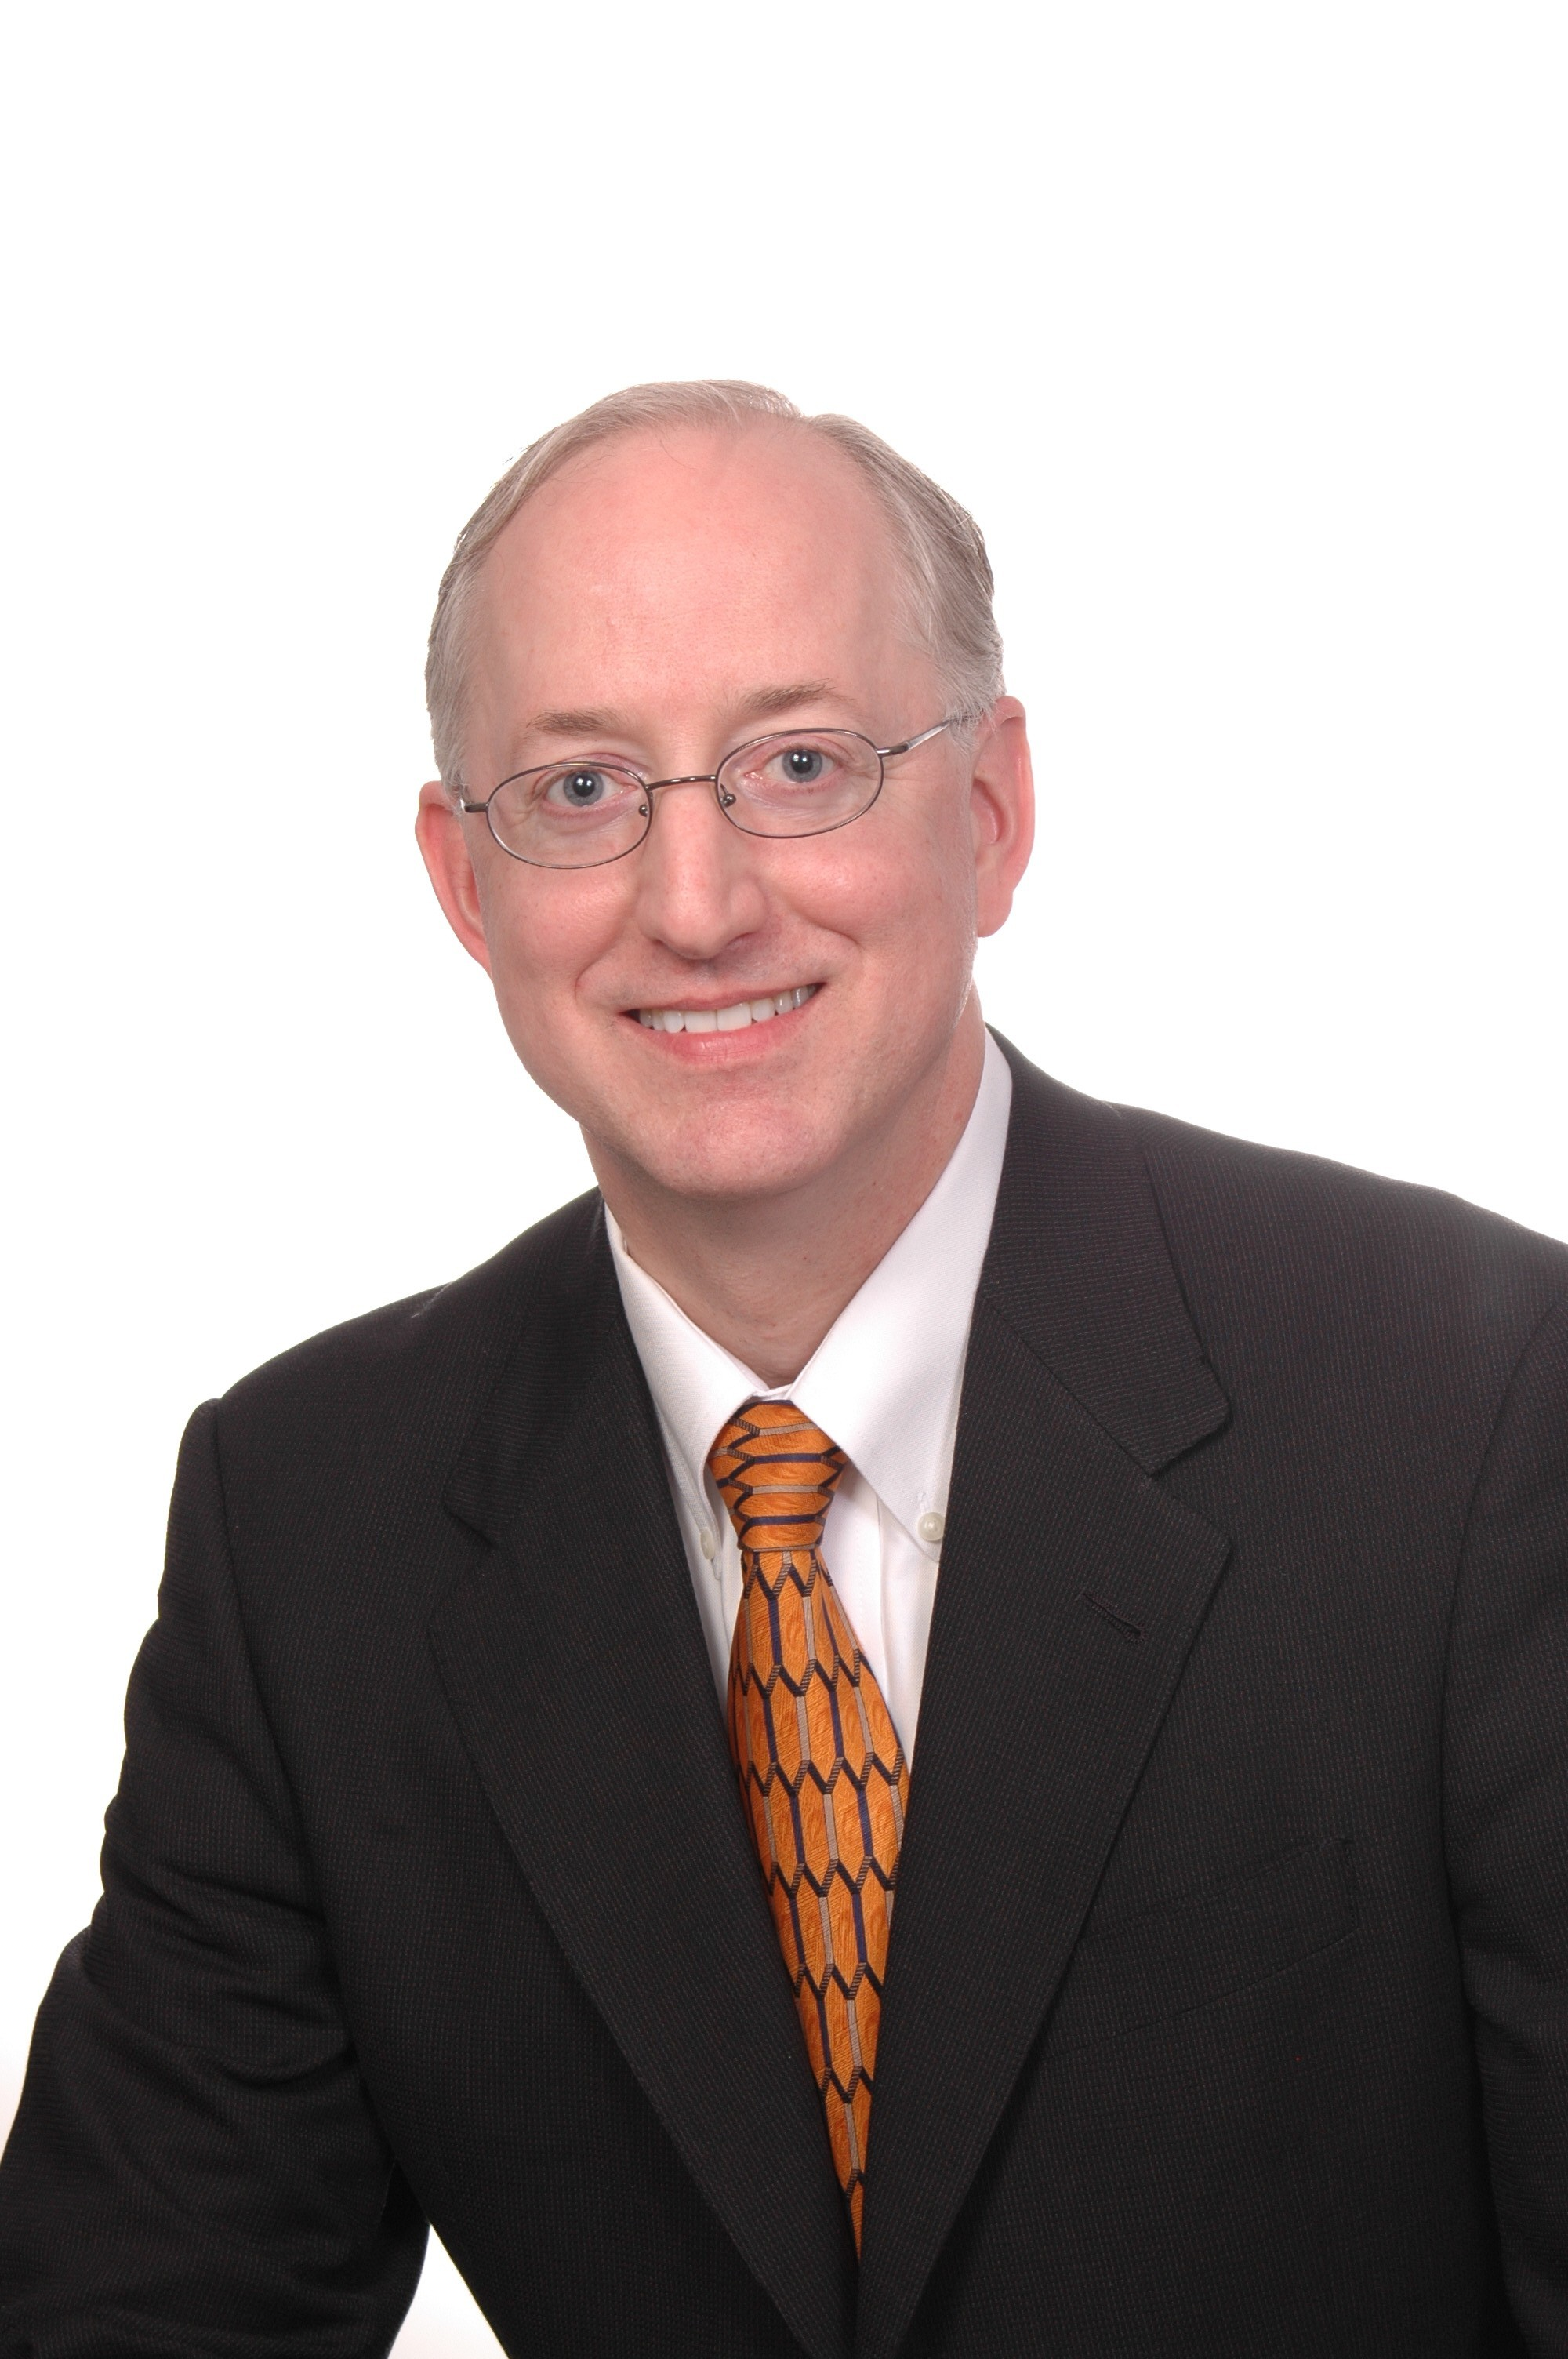 John Frymire, financial advisor Shelbyville KY